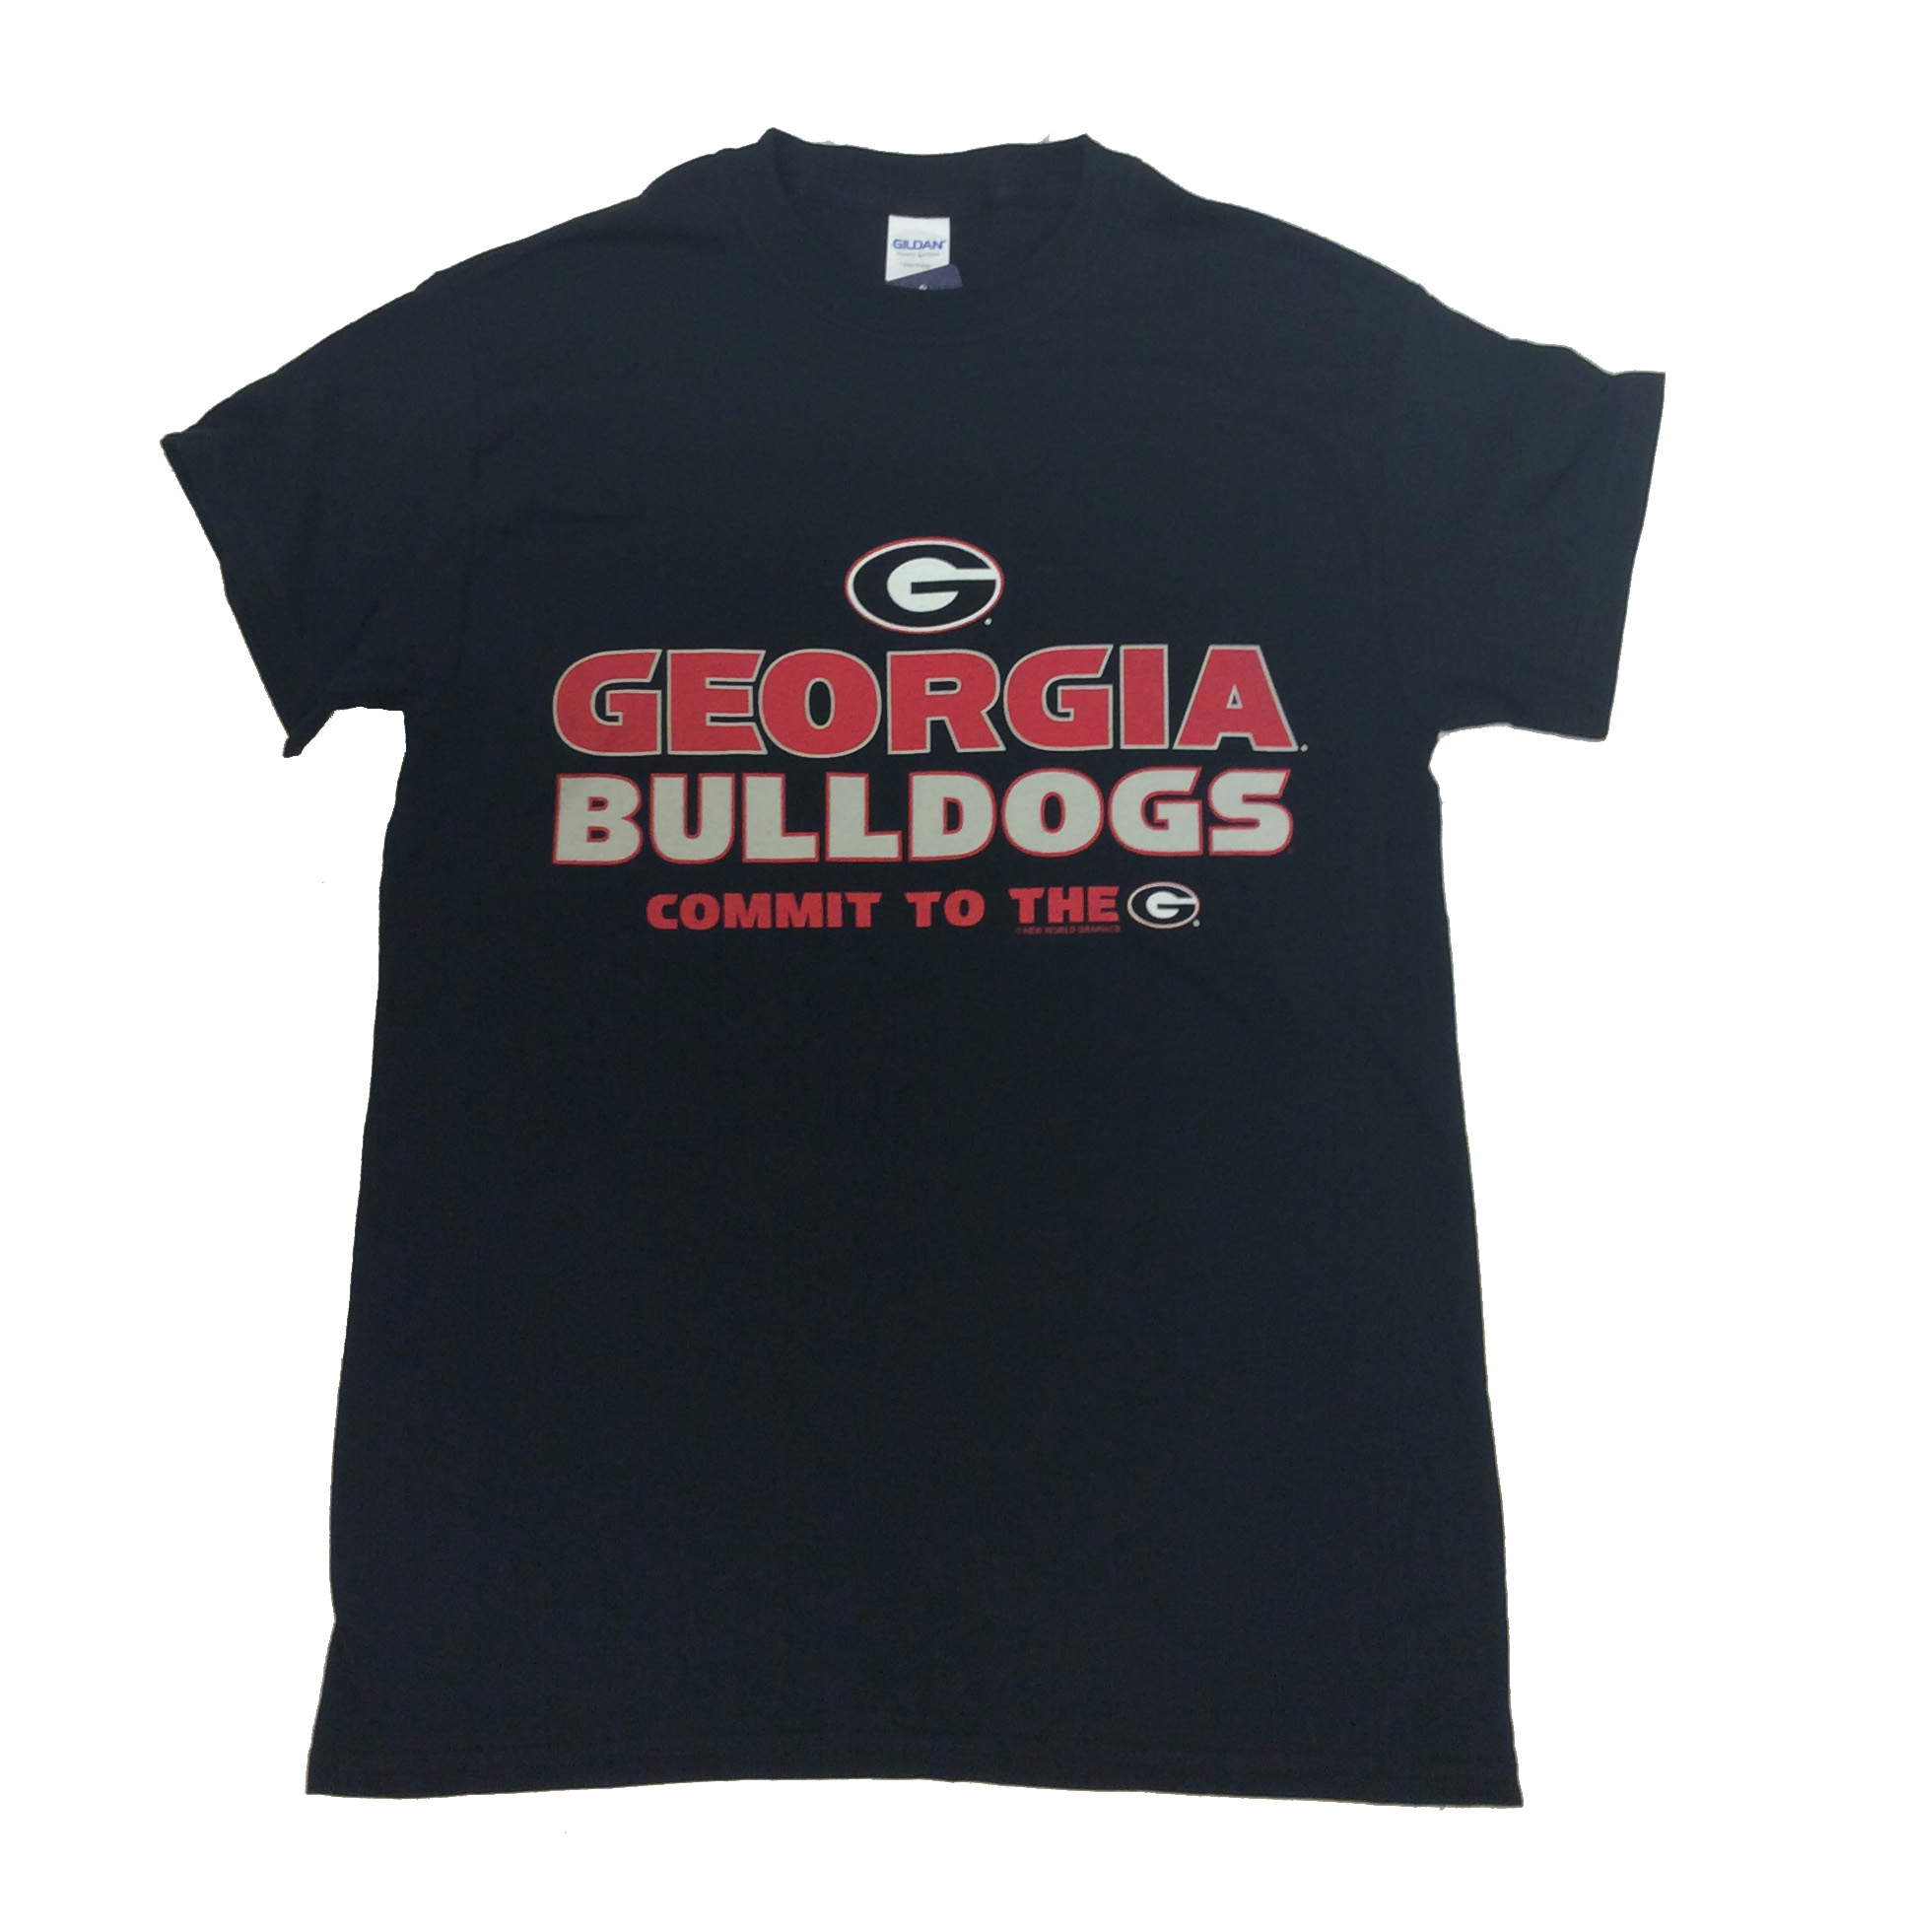 Georgia Bulldogs 2017 Commit to the G T-shirt